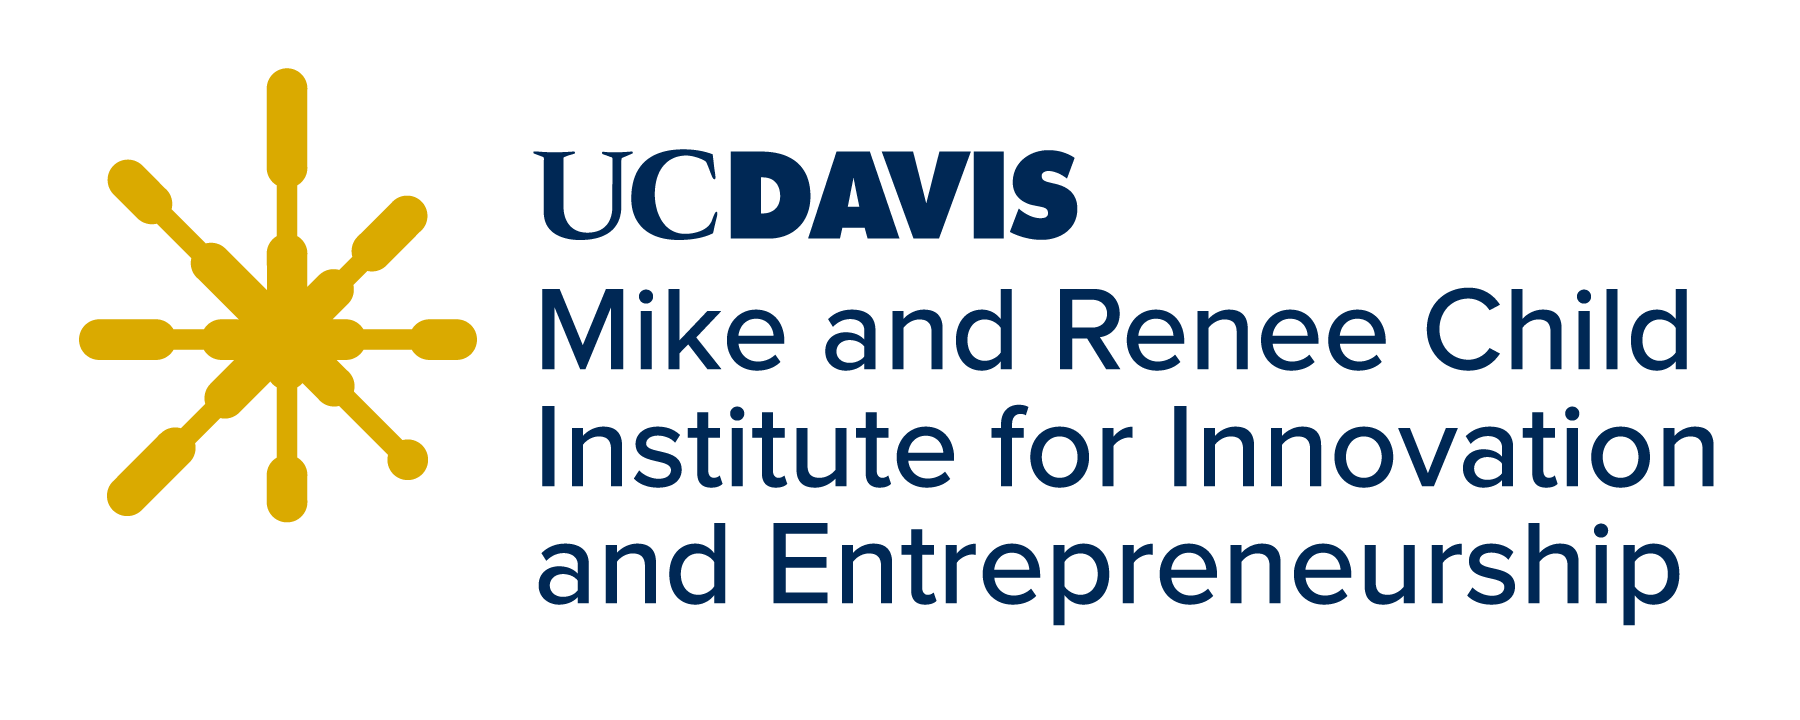 Institute for Innovation and Entrepreneurship